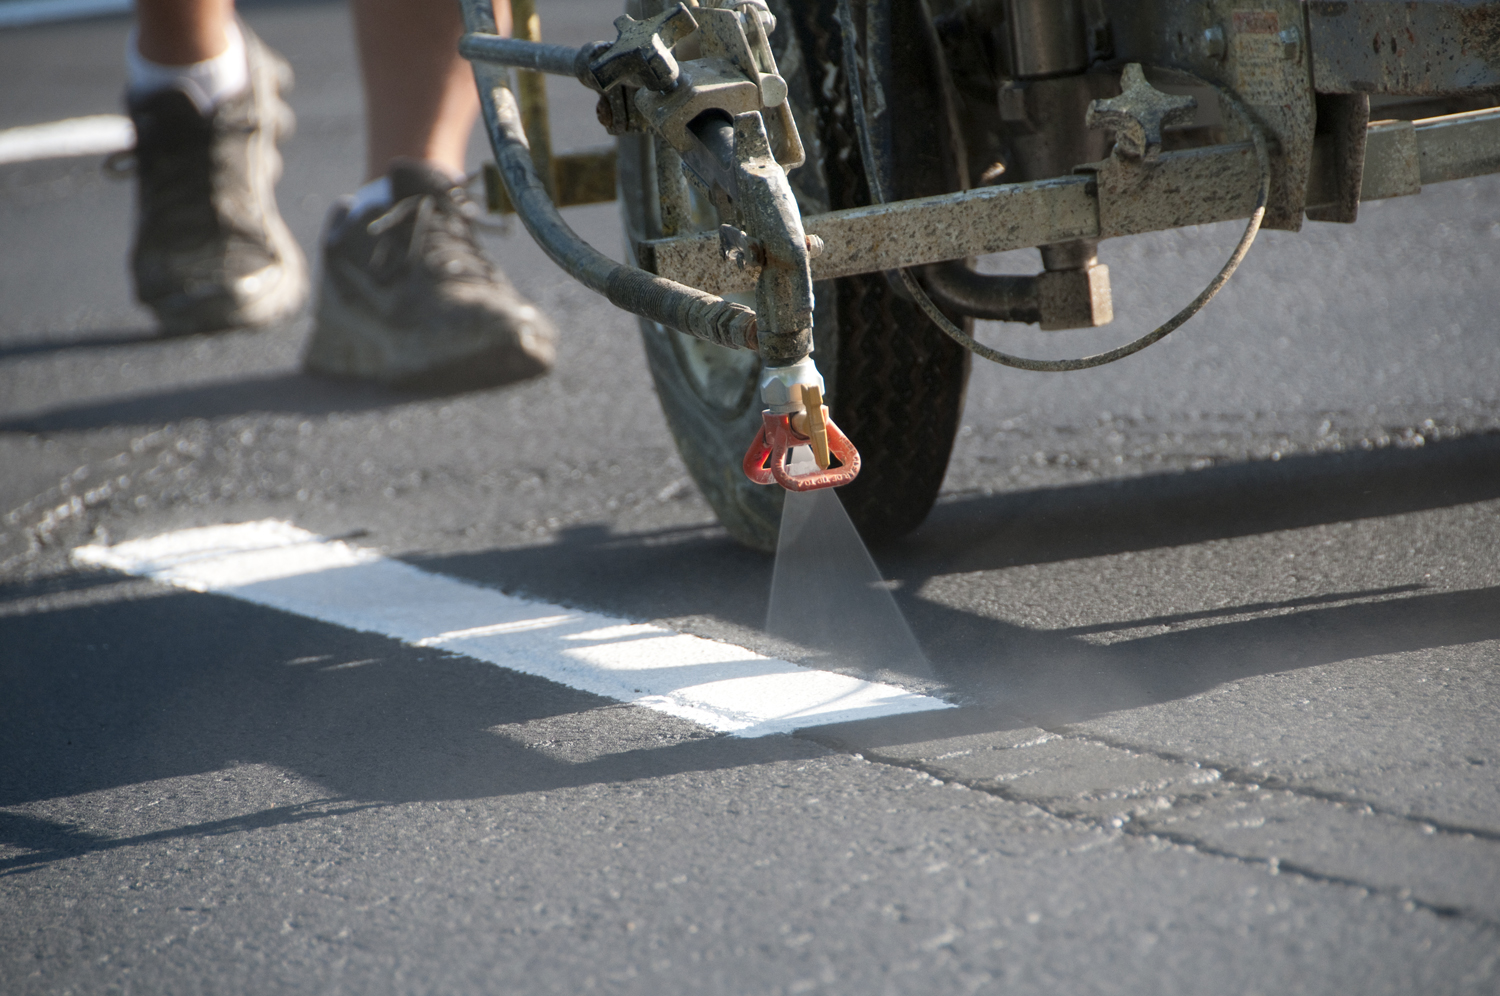 Asphalt services las vegas affordable striping sealing for Cost to paint parking lot lines